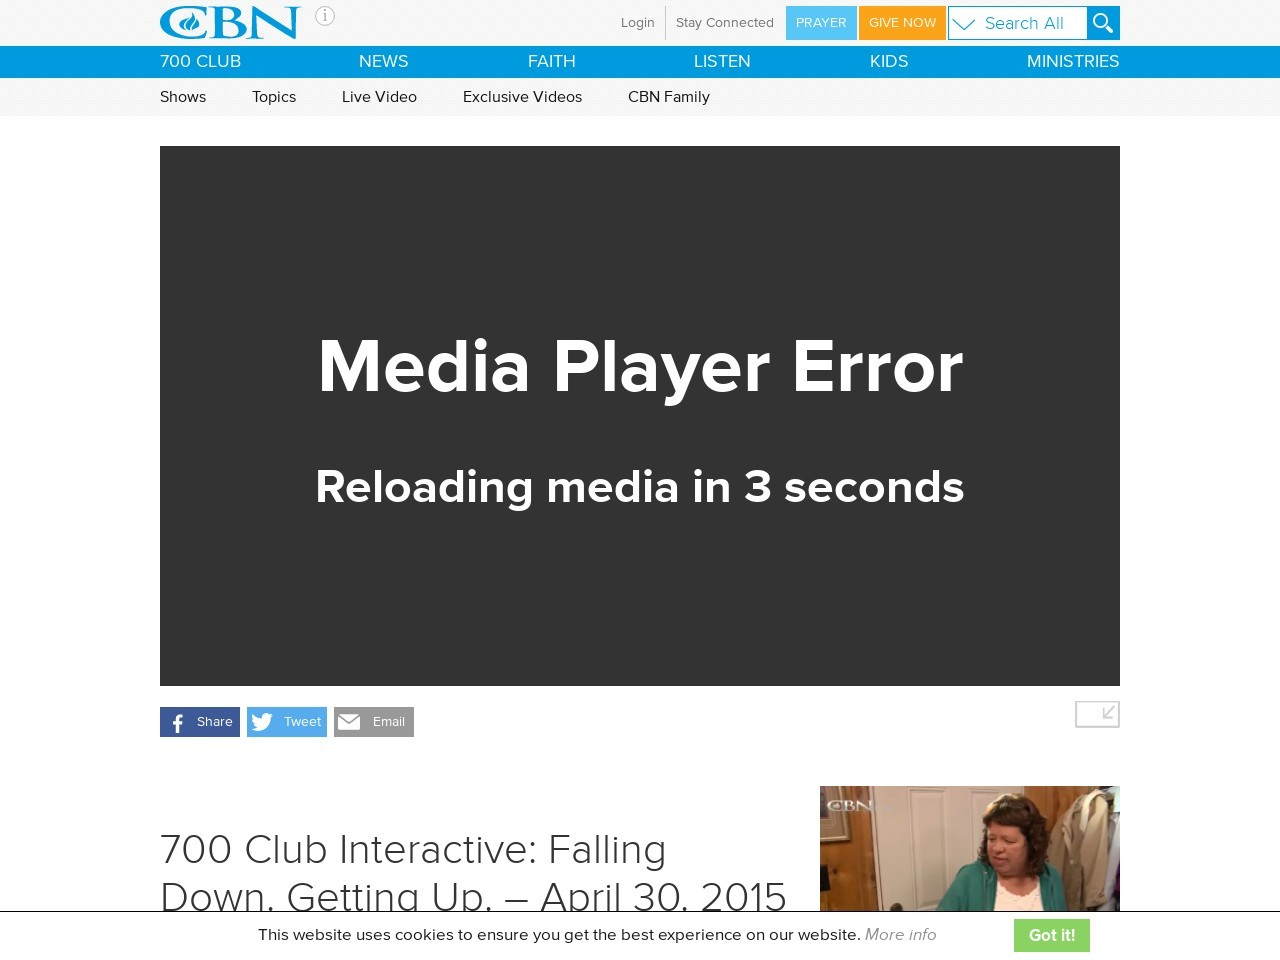 700 Club Interactive: Falling Down. Getting Up. – April 30. 2015